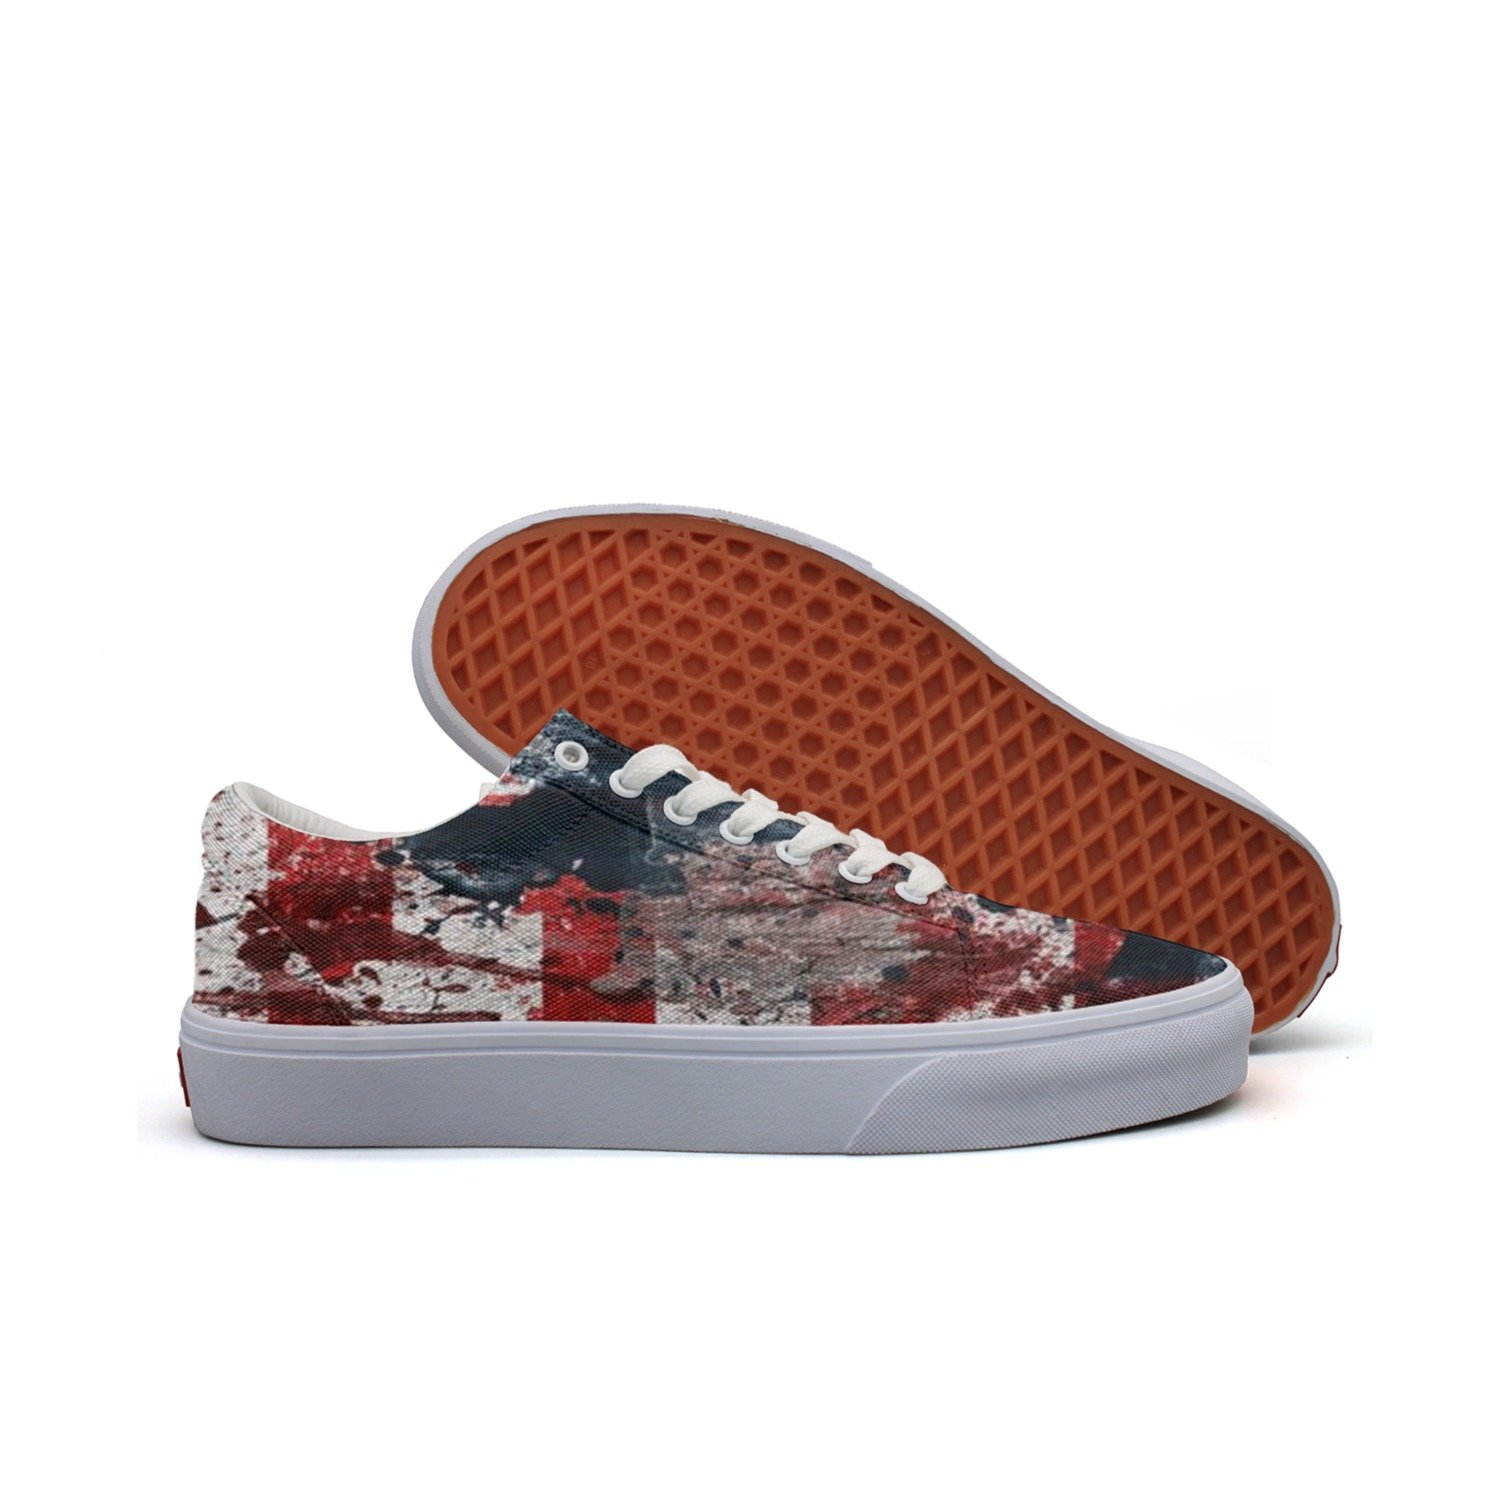 KKLDFD American Flag All National Flags Of The Nations With Names Canvas Low-top Skateboard Shoes OfMens Casual White